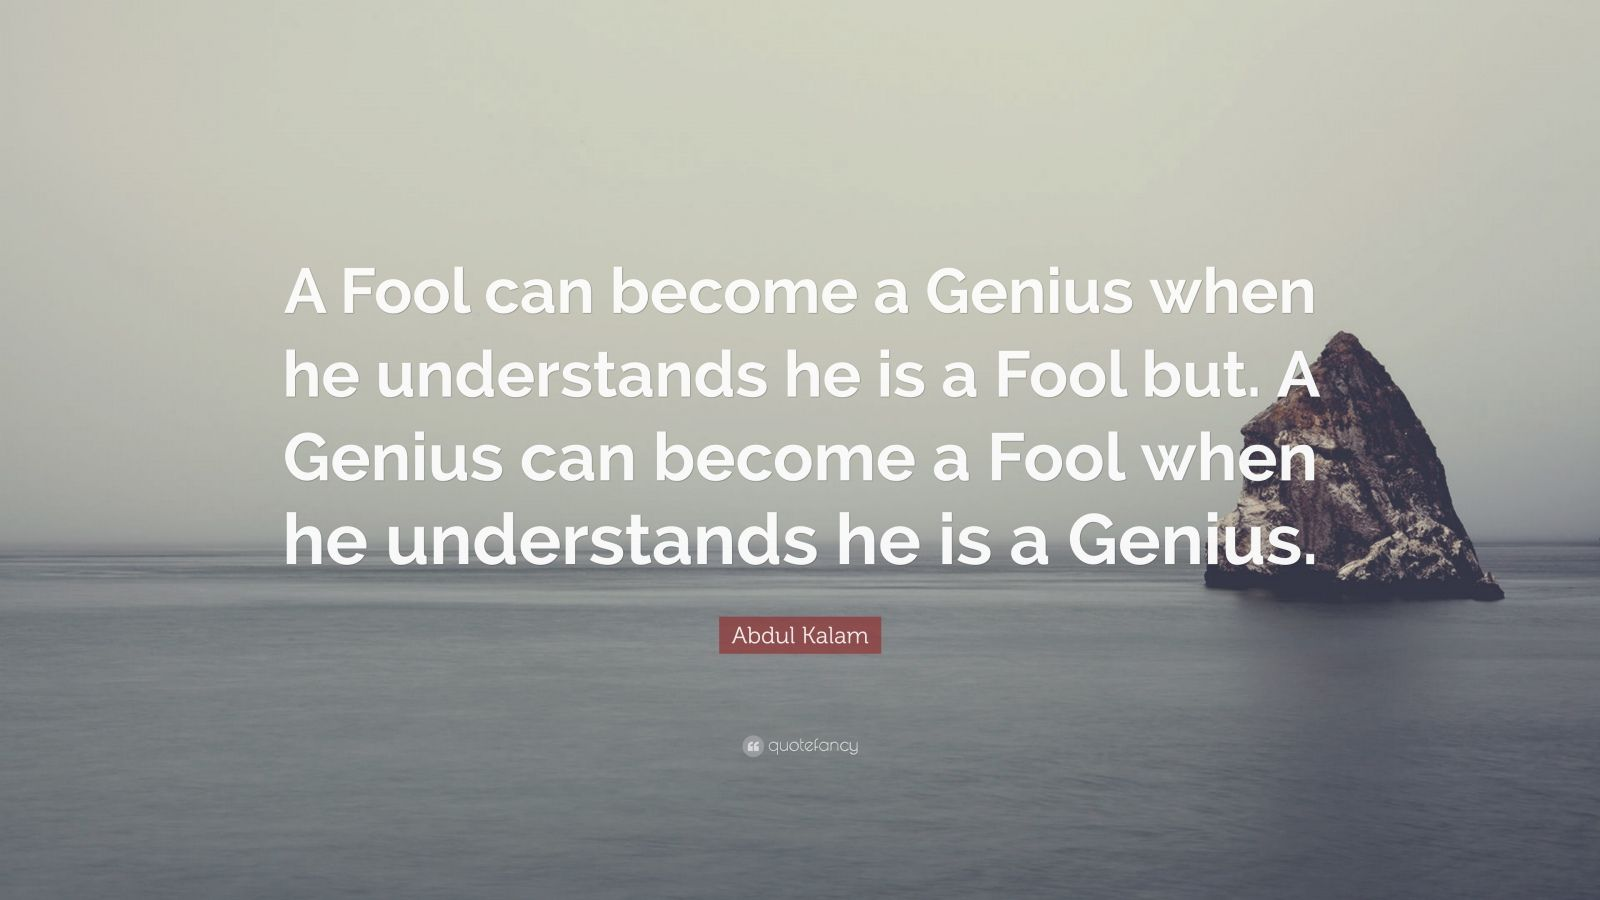 """Abdul Kalam Quote: """"A Fool can become a Genius when he understands he is a Fool but. A Genius can become a Fool when he understands he is a Genius."""""""